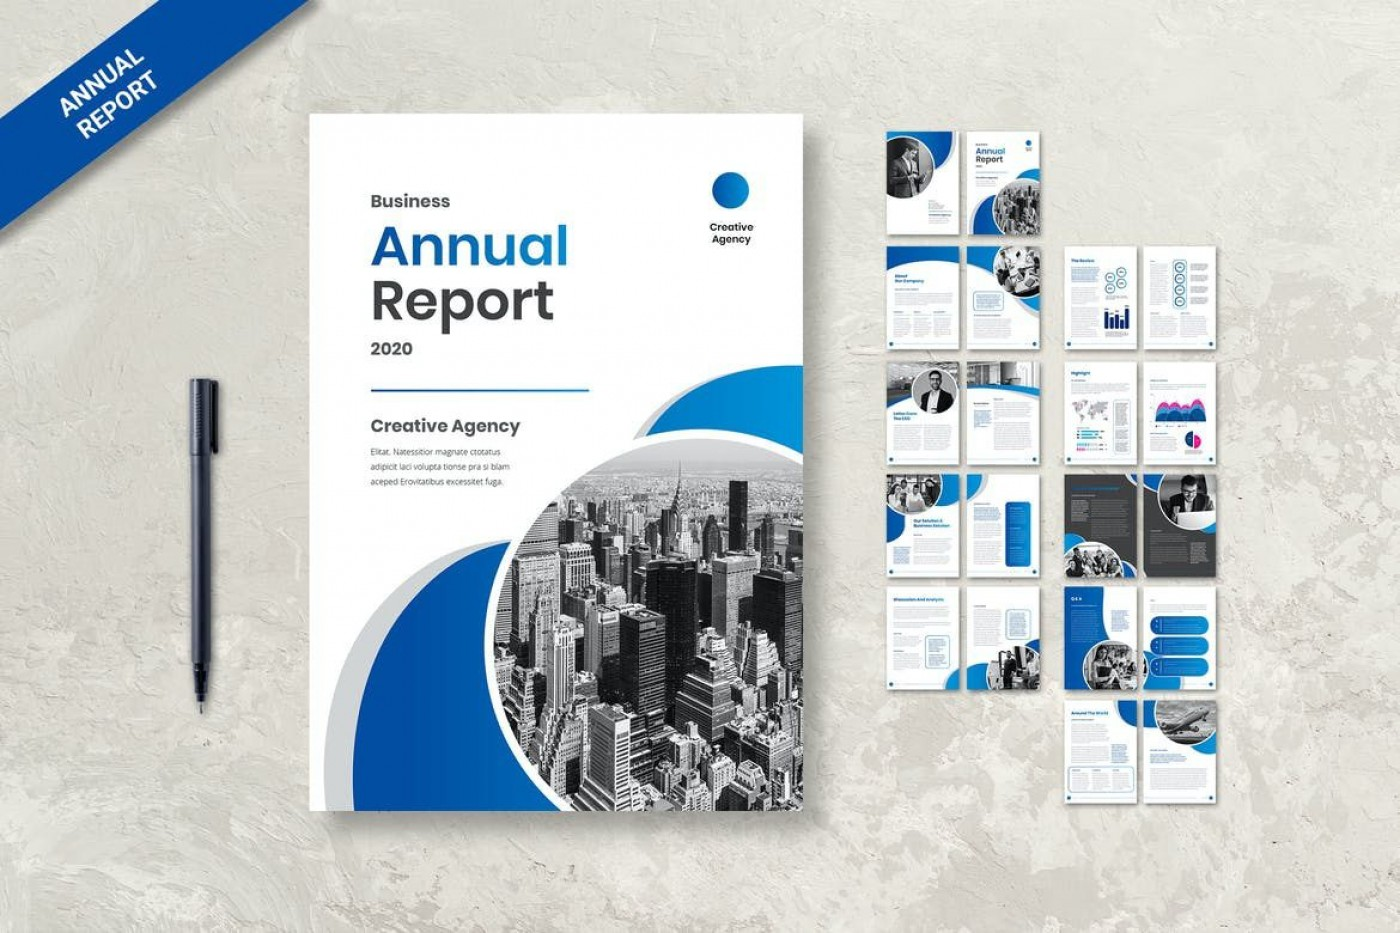 009 Wonderful Free Download Annual Report Cover Design Template High Resolution  Indesign In Word1400